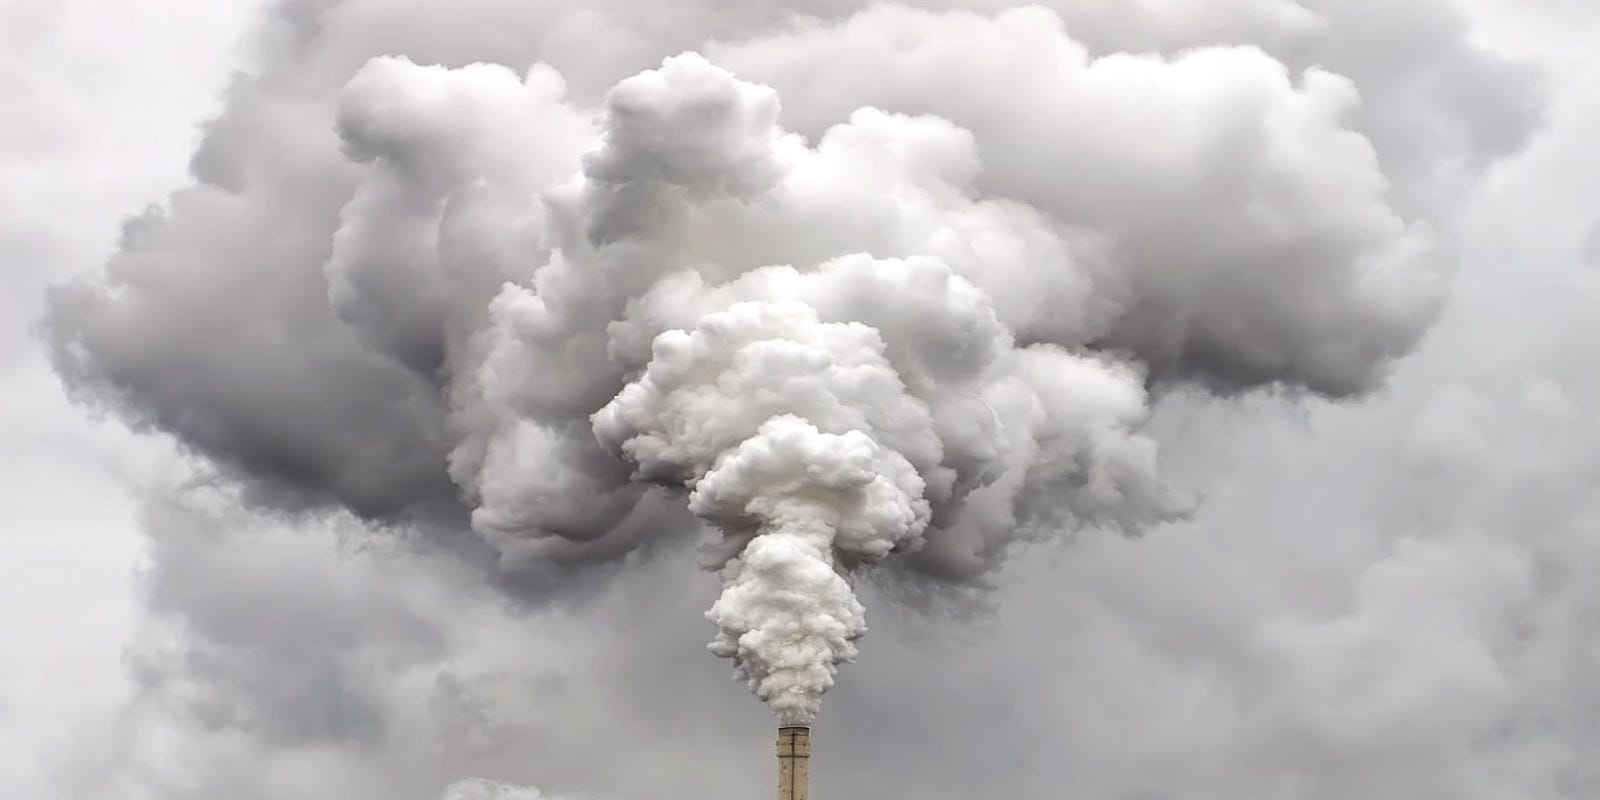 Coronavirus lockdowns have caused a whopping 17% drop in global carbon emissions